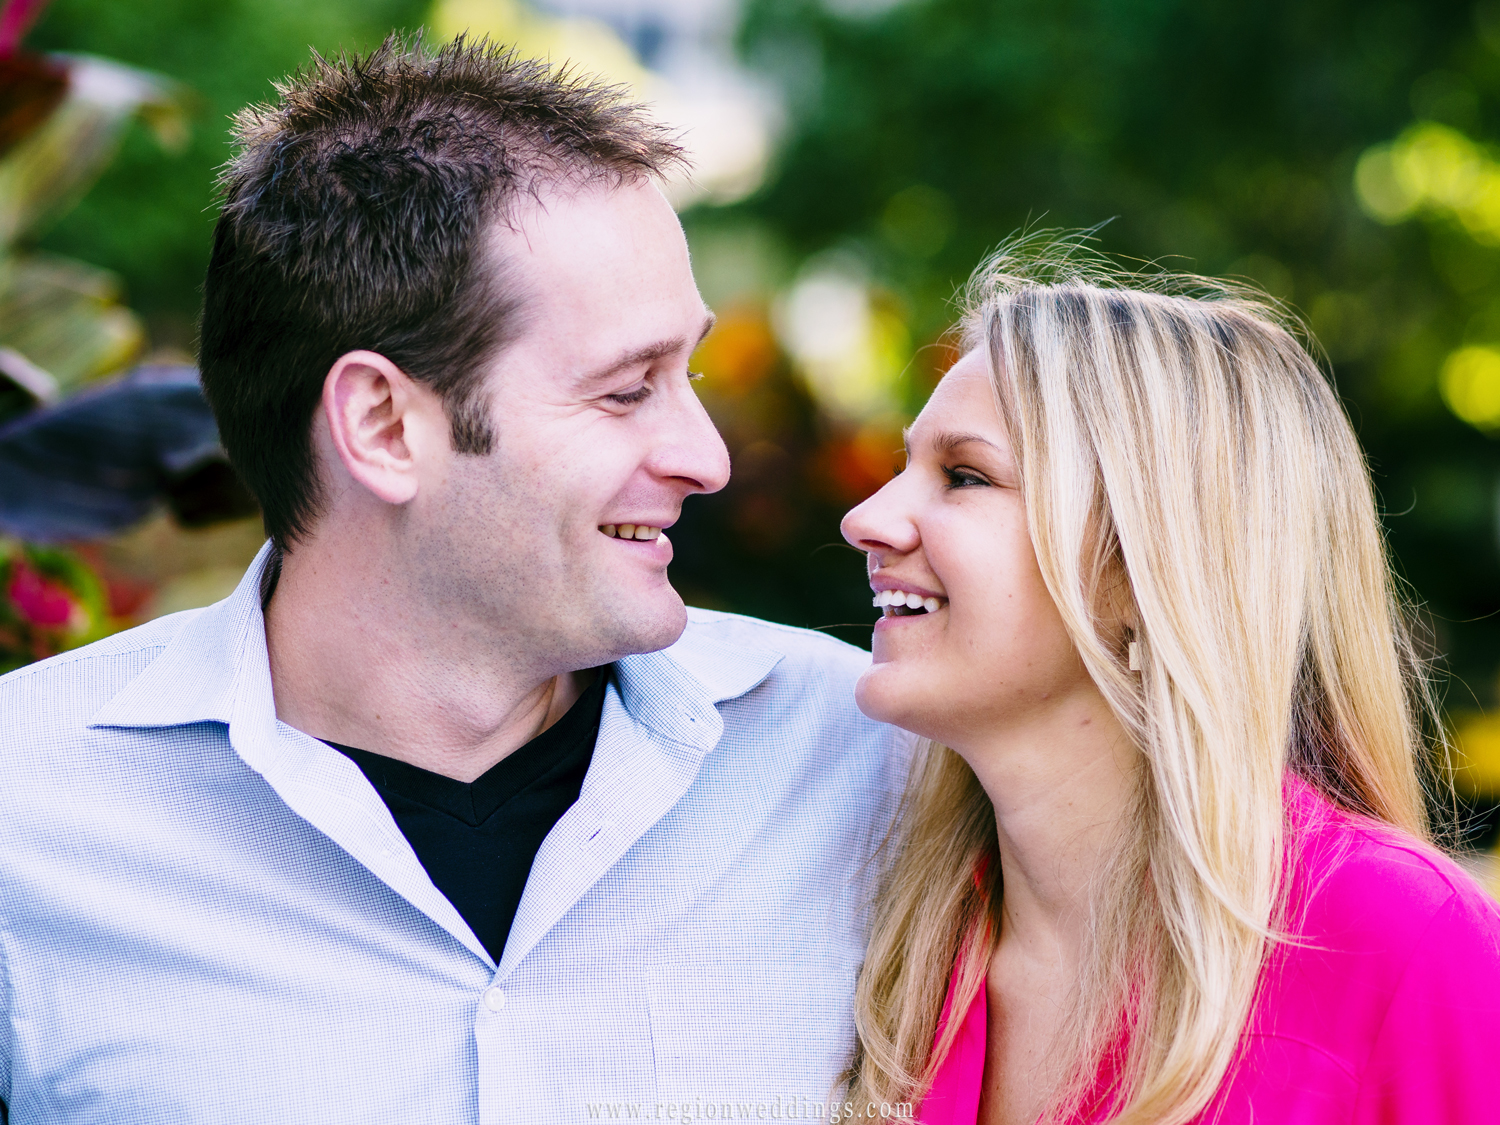 A candid moment between a romantic couple in a garden area in Chicago.